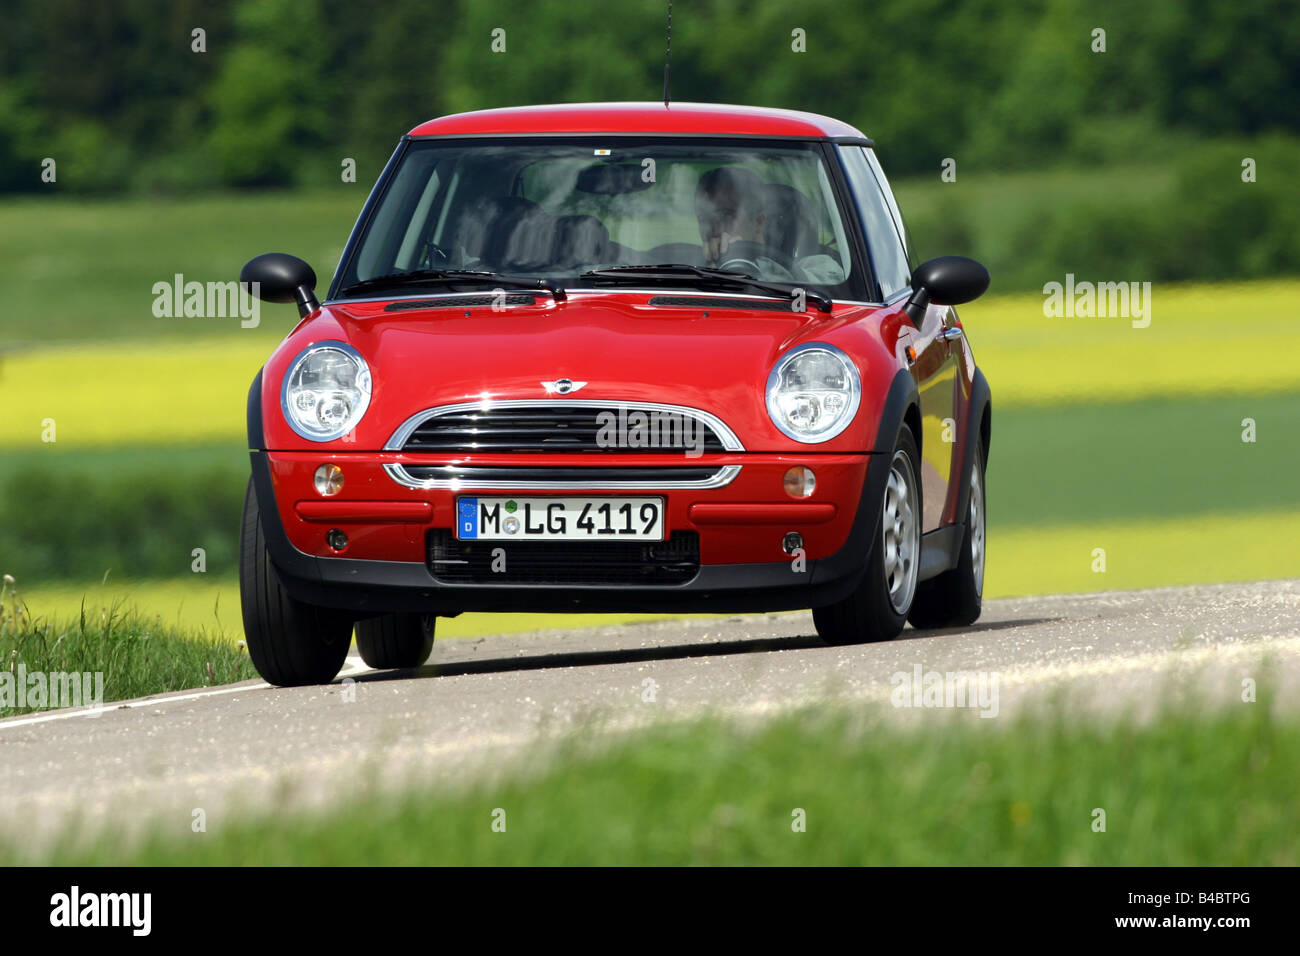 Car, Mini One D, Miniapprox.s, Limousine, model year 2001-, red, driving, diagonal from the front, frontal view, - Stock Image